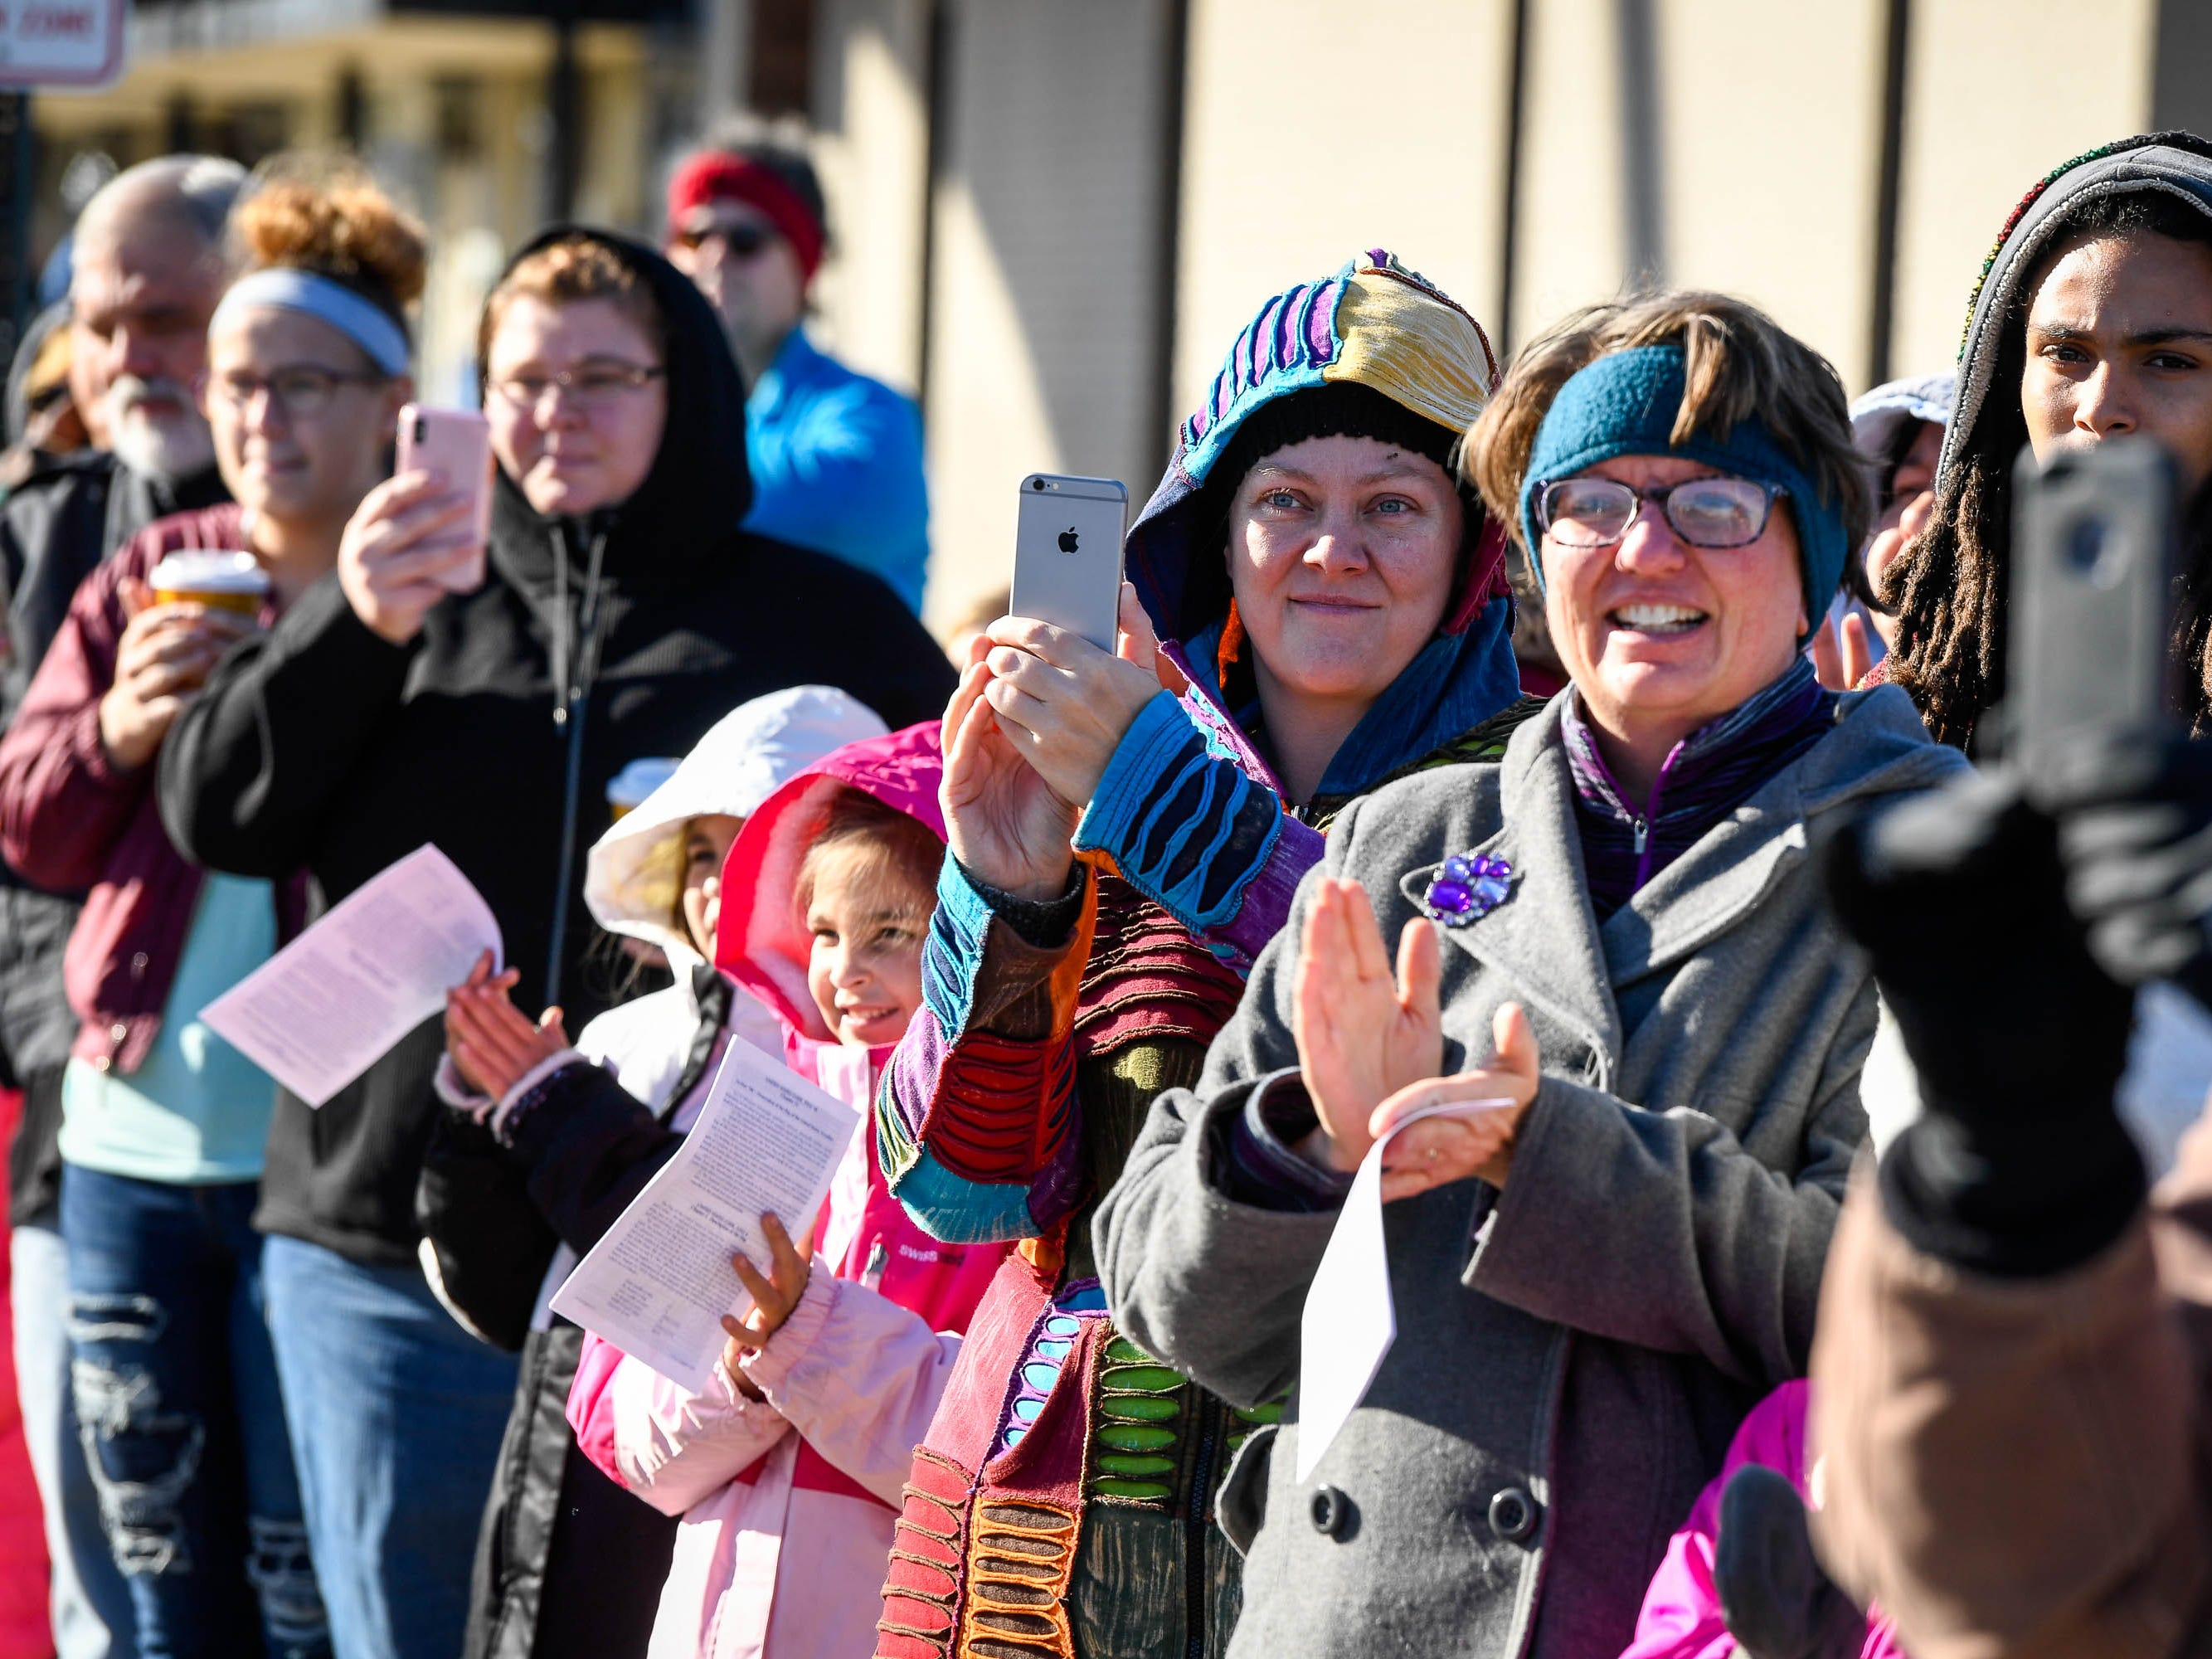 Eager parade watchers line-up to see the annual Four Freedoms Veterans Parade on Evansville's West Franklin Street Saturday, November 10, 2018.